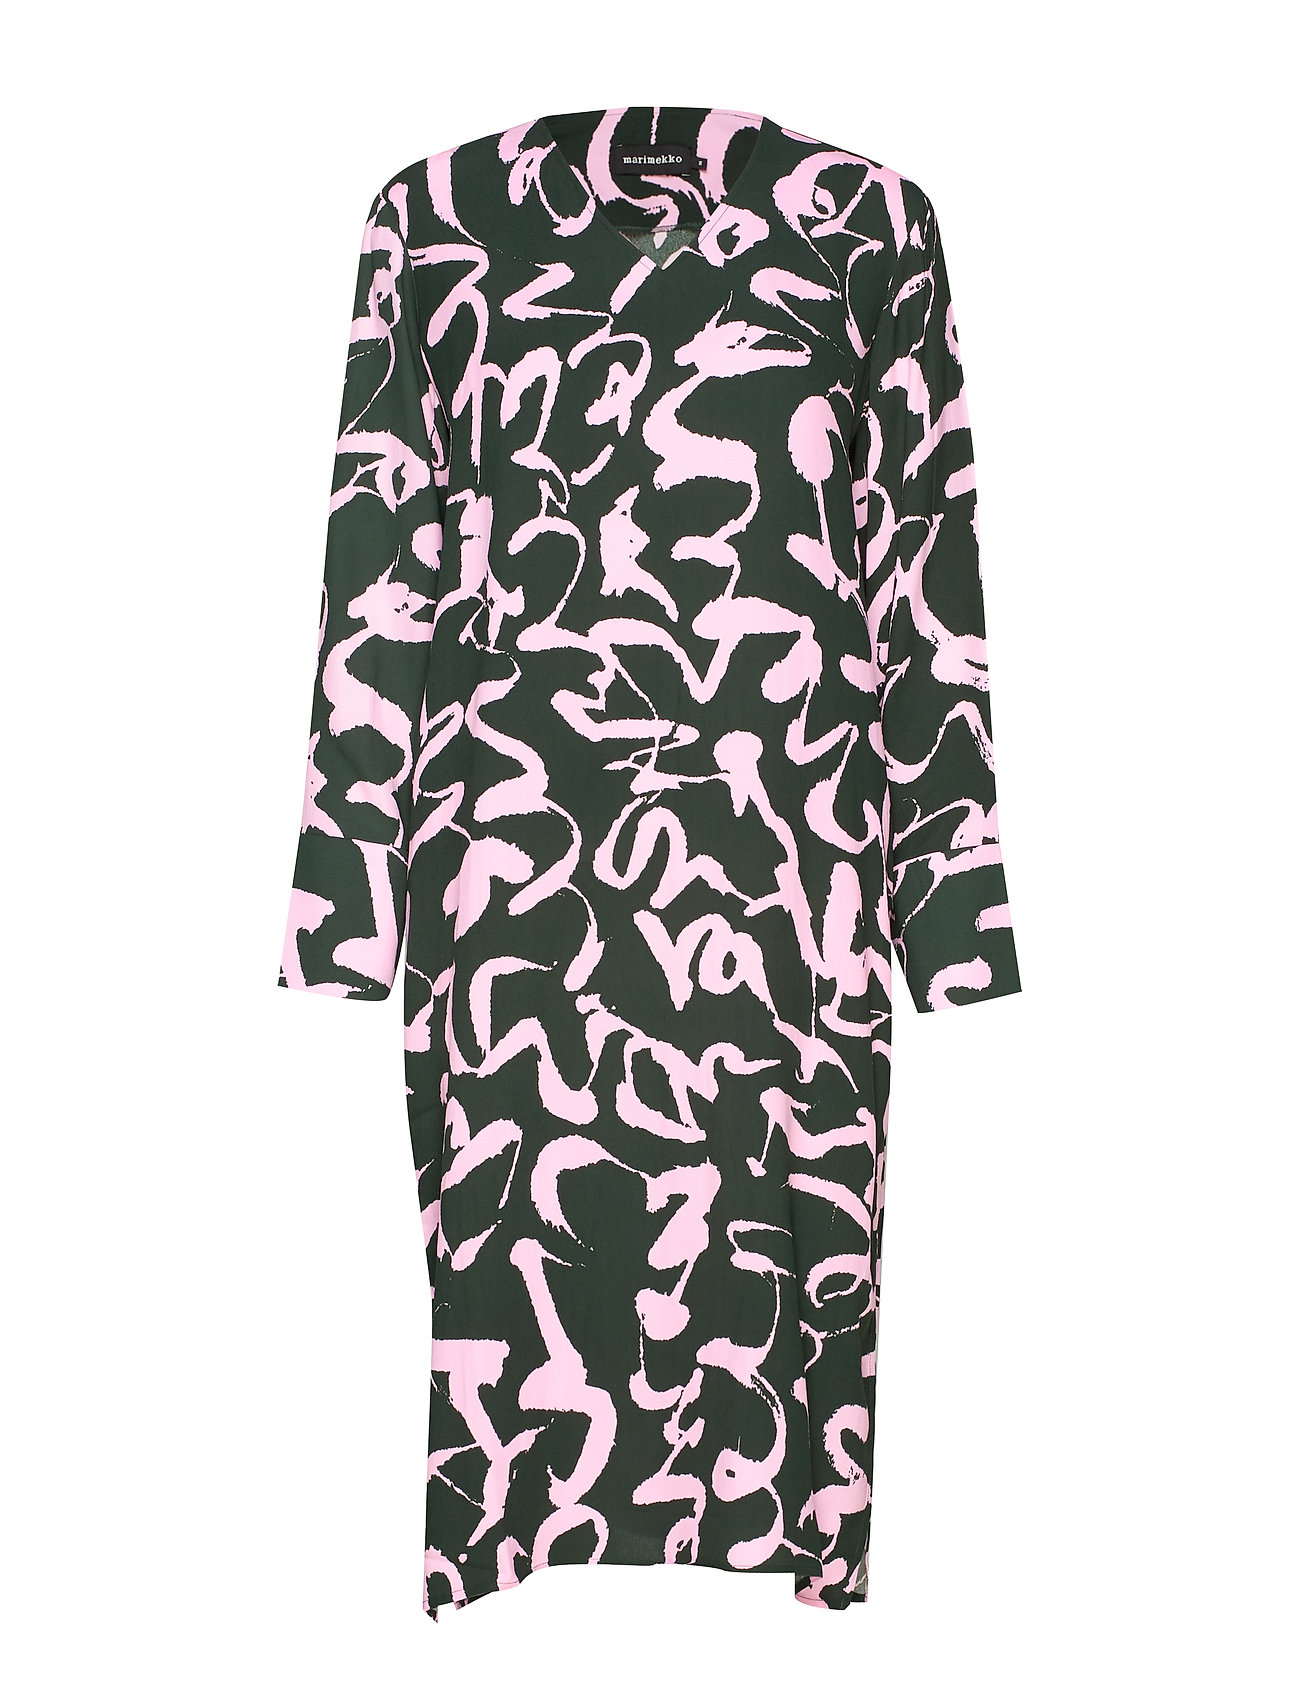 Marimekko SYNONYYMI HARHA Dress - GREEN, PINK